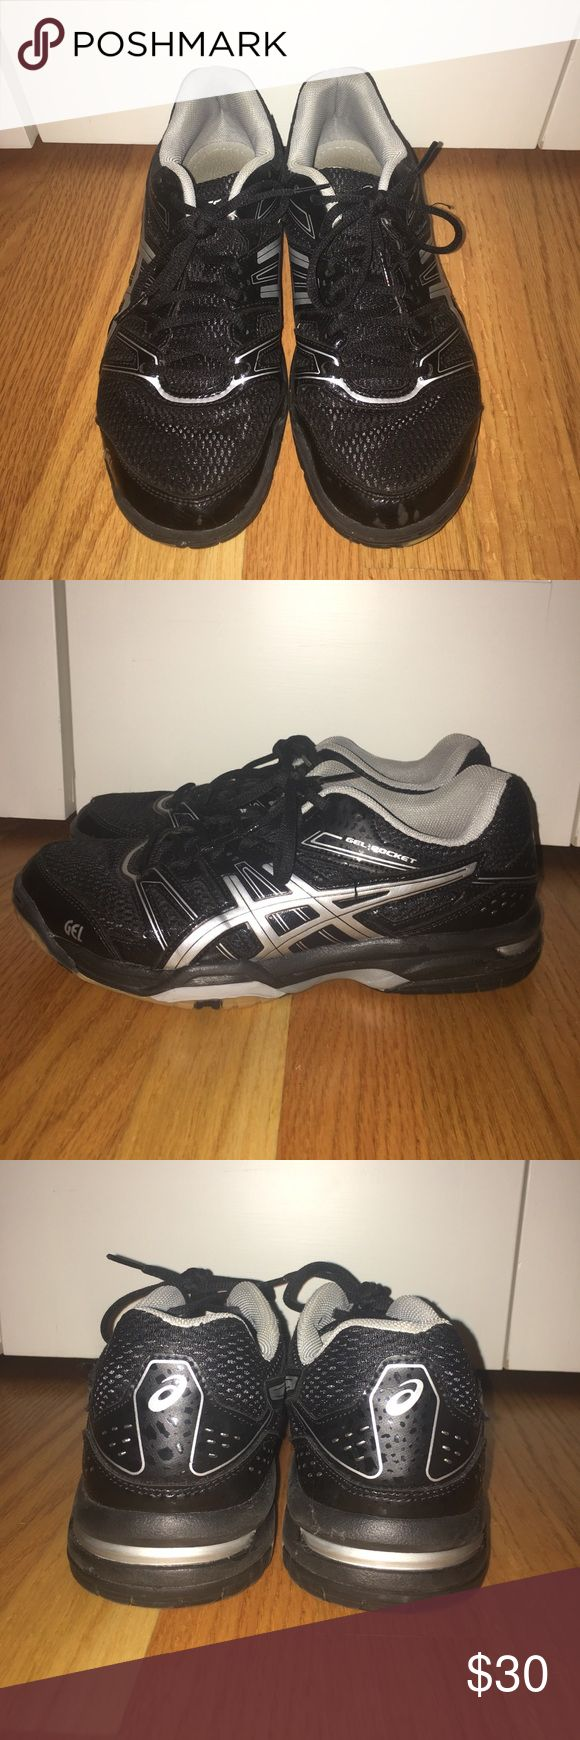 Black Asics Volleyball Court Shoes Black and gray Asics volleyball/court shoes. Asics Shoes Sneakers